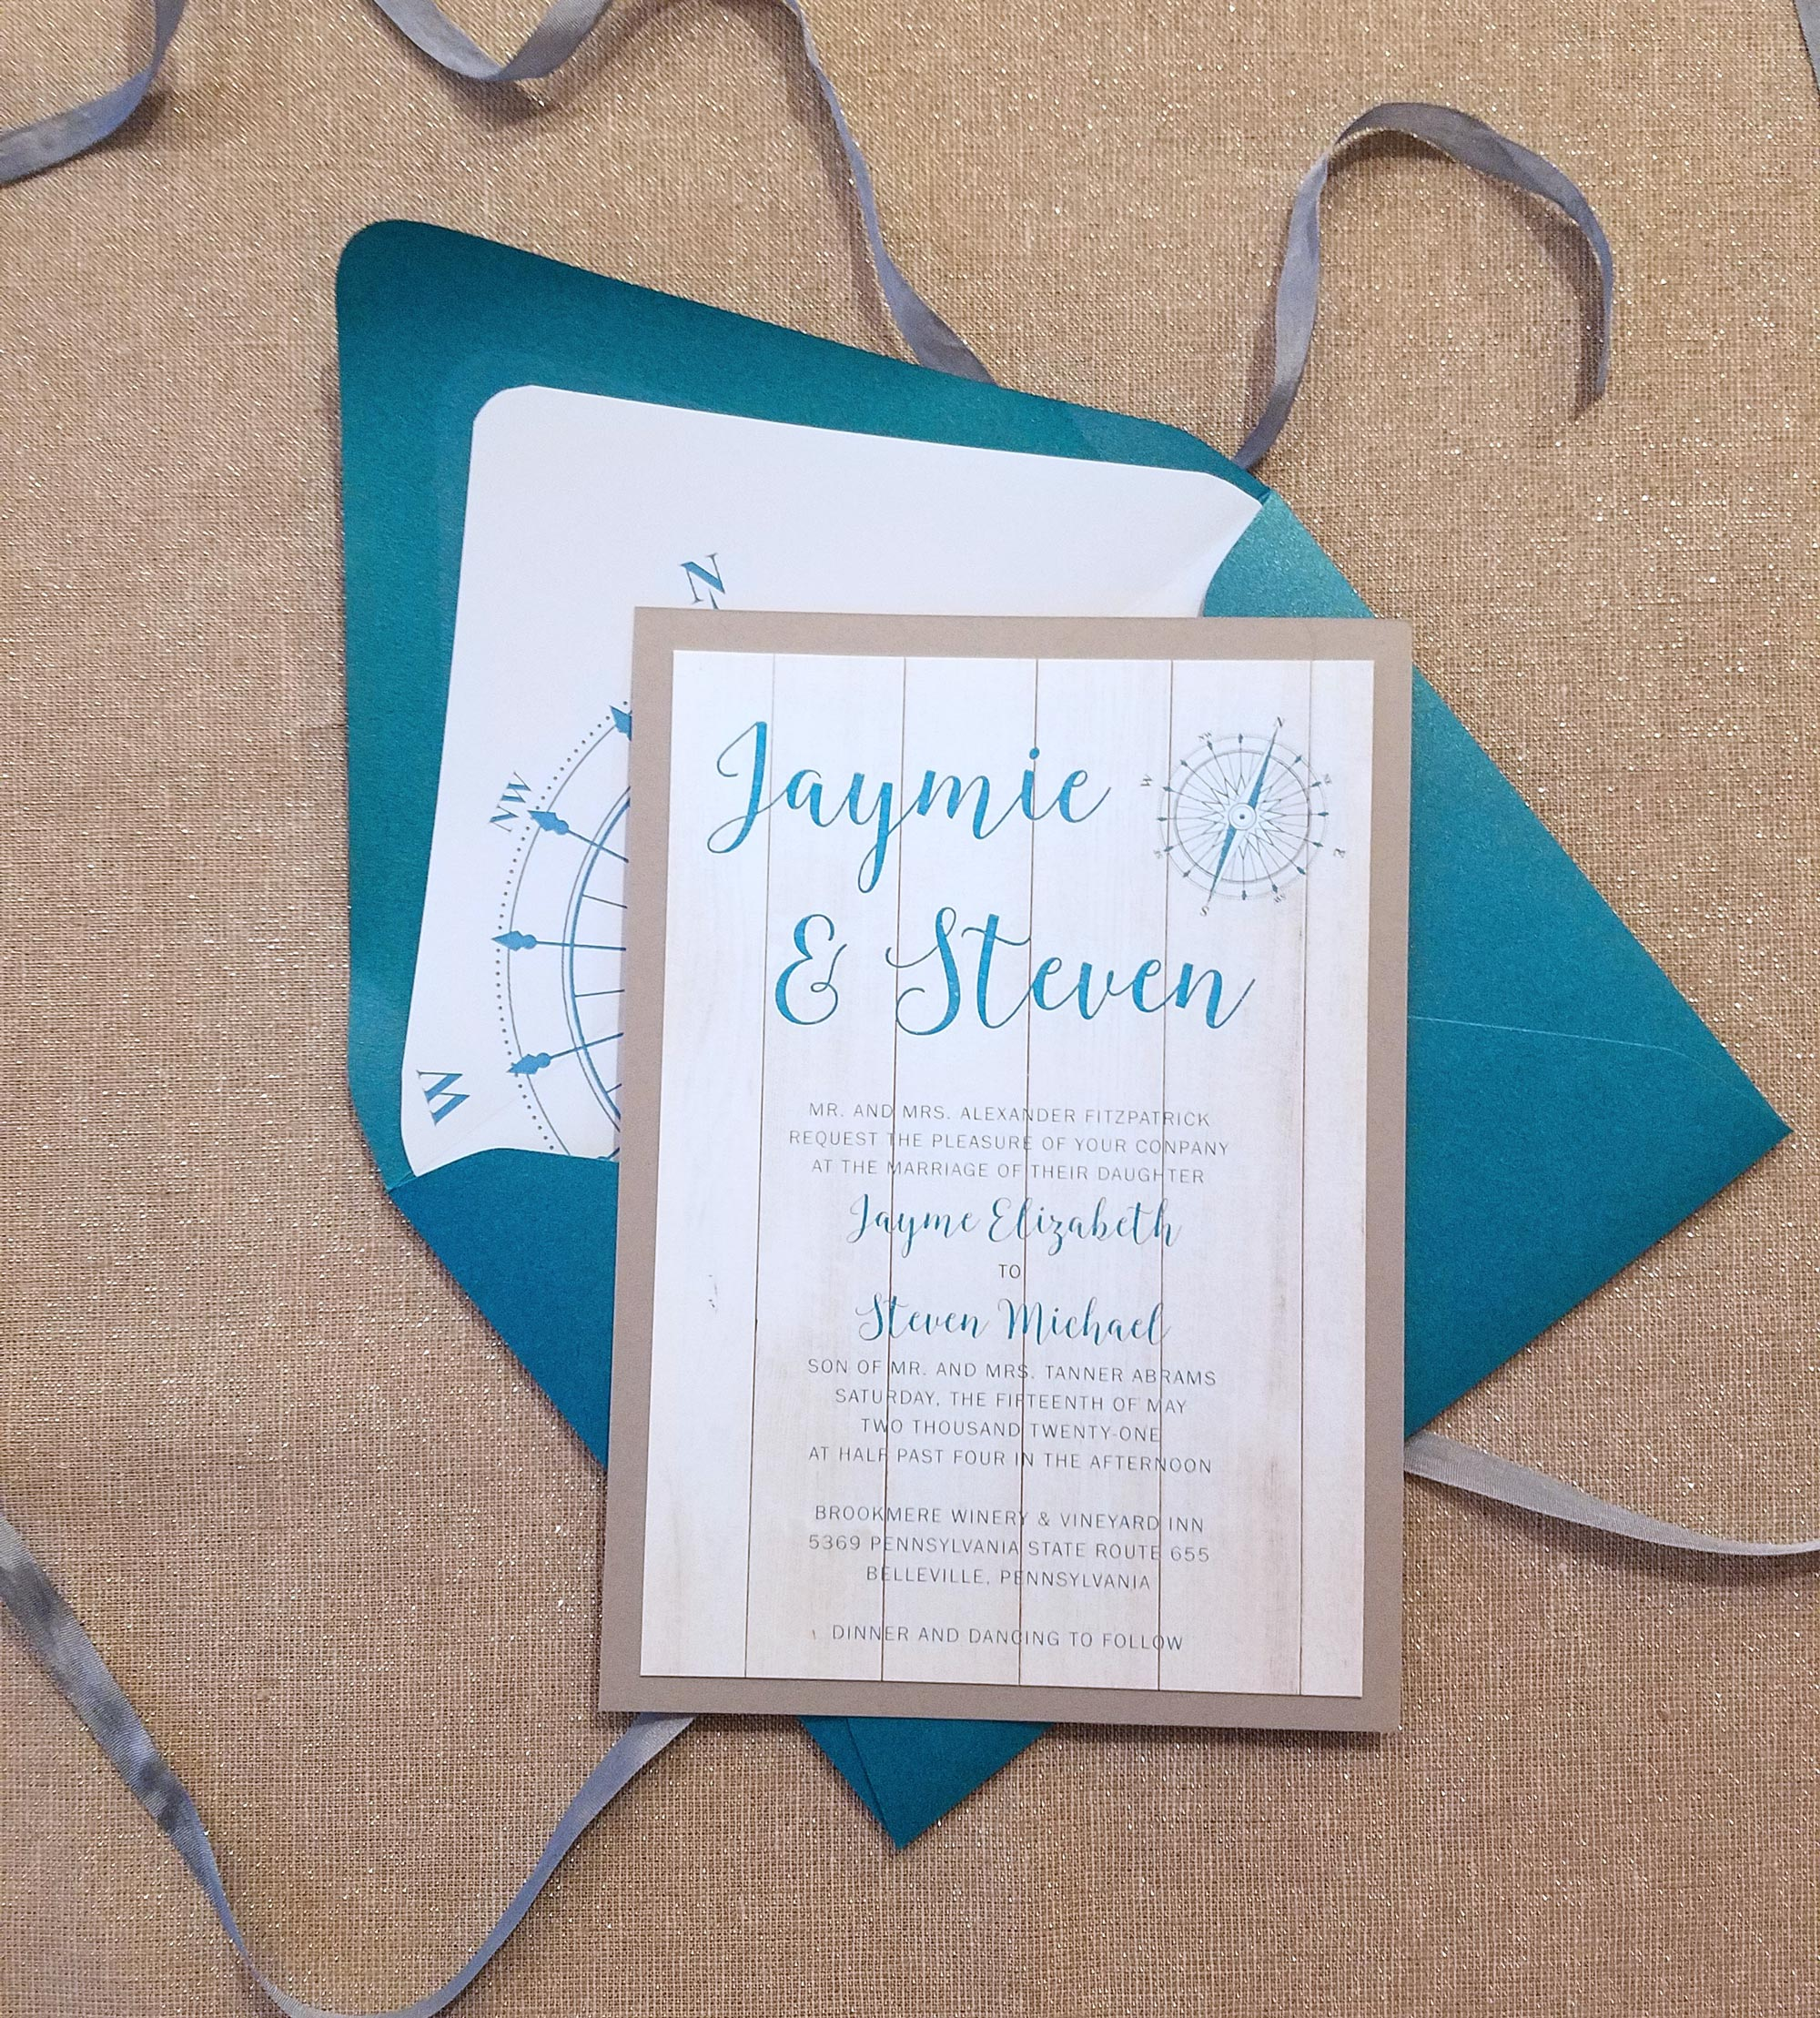 Nautical Wedding Invitations.Weathered Nautical Wedding Invitation